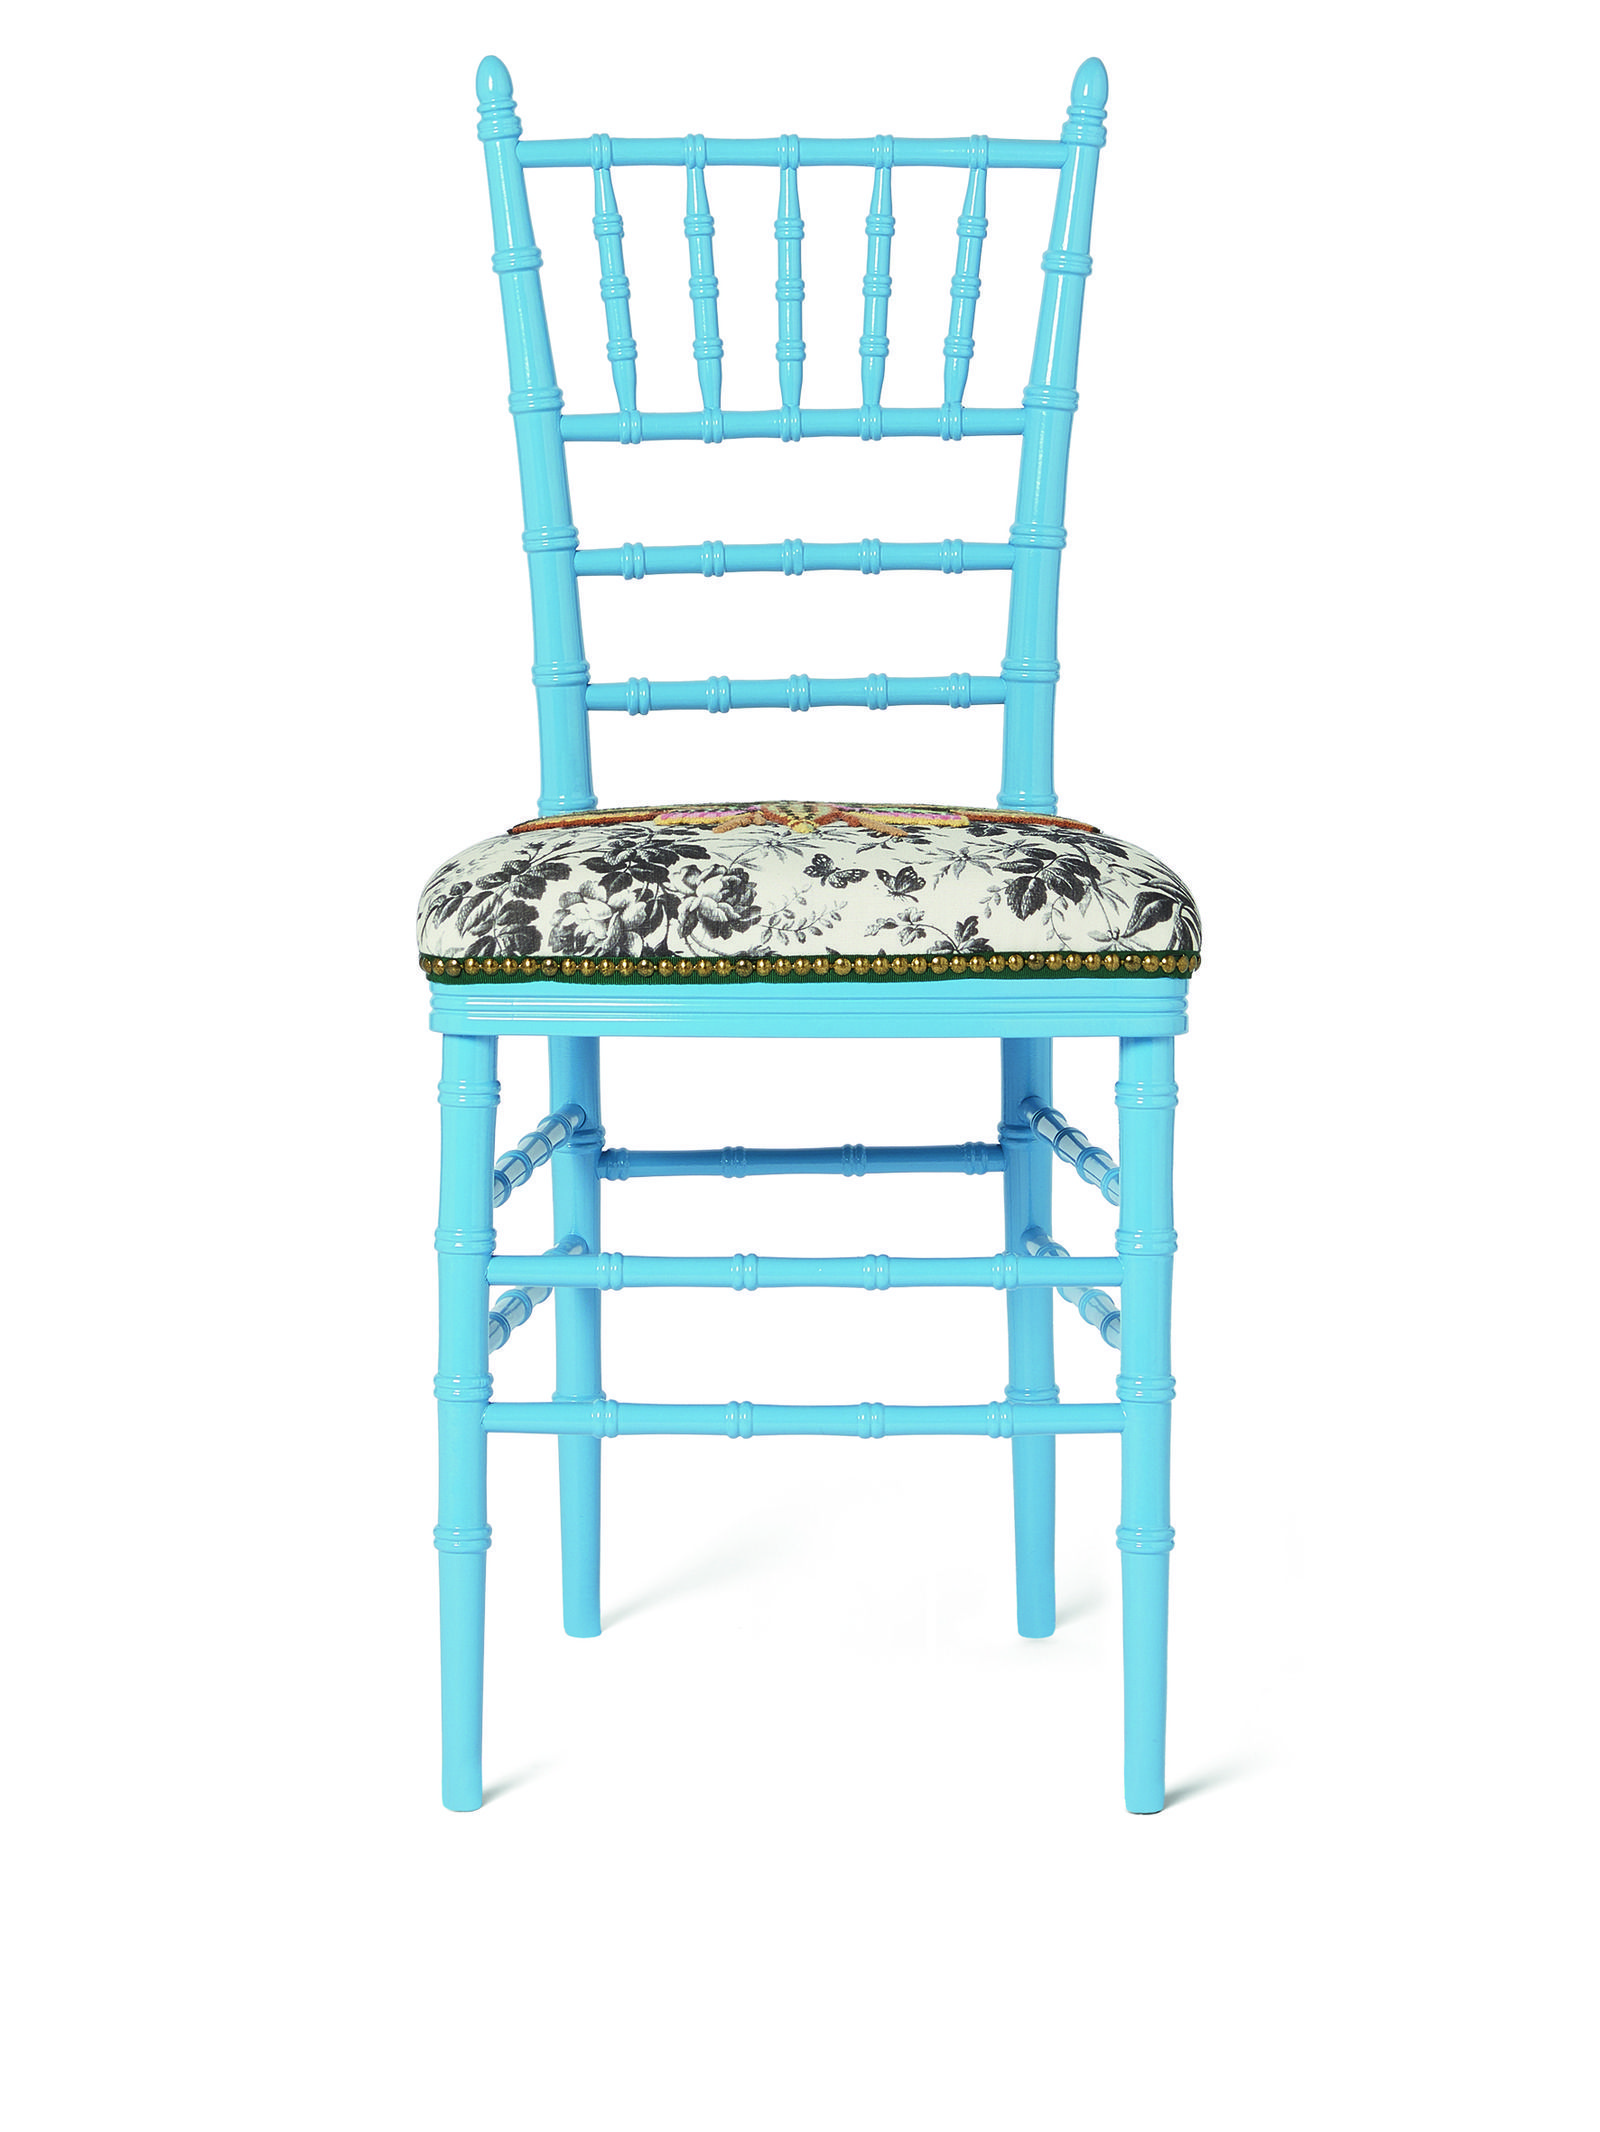 gucci dining chairs on every single item in gucci s new homewear line chair design wooden midcentury modern dining chairs modern wooden chair pinterest